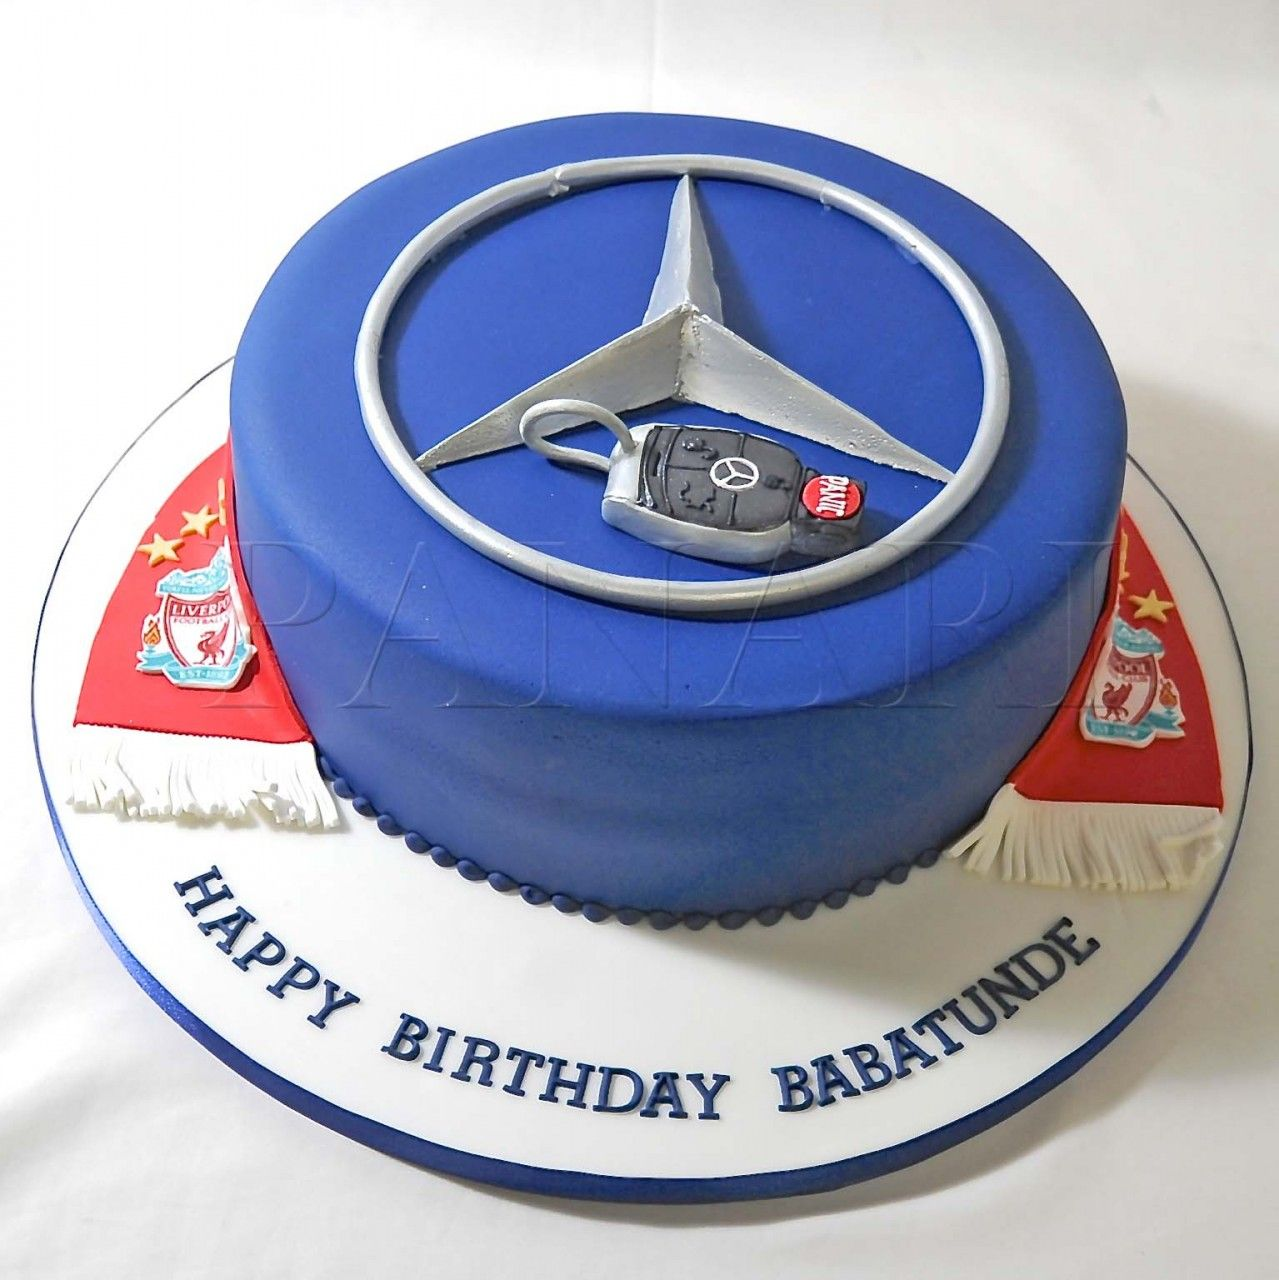 Blue benz logo with key mercedes benz cake 7th birthday for Mercedes benz cake design